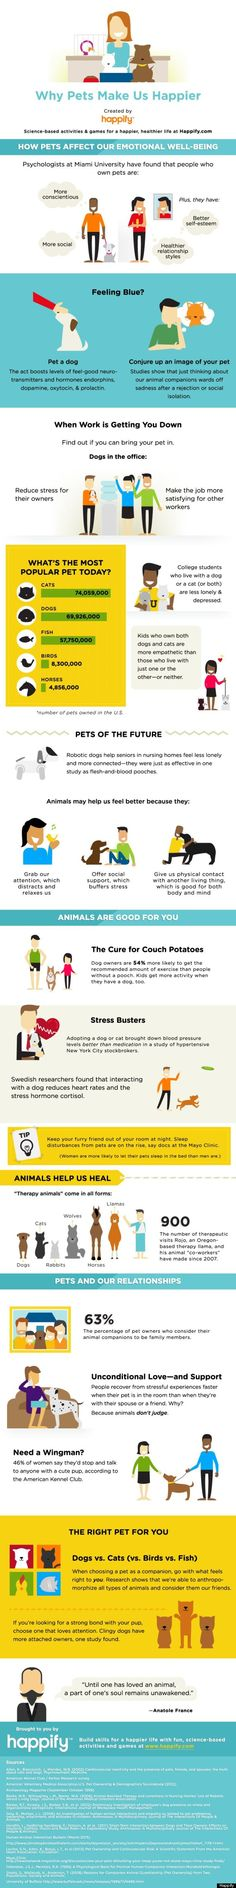 Check out this infographic showing all the ways pets are good for our mental and emotional well-being.